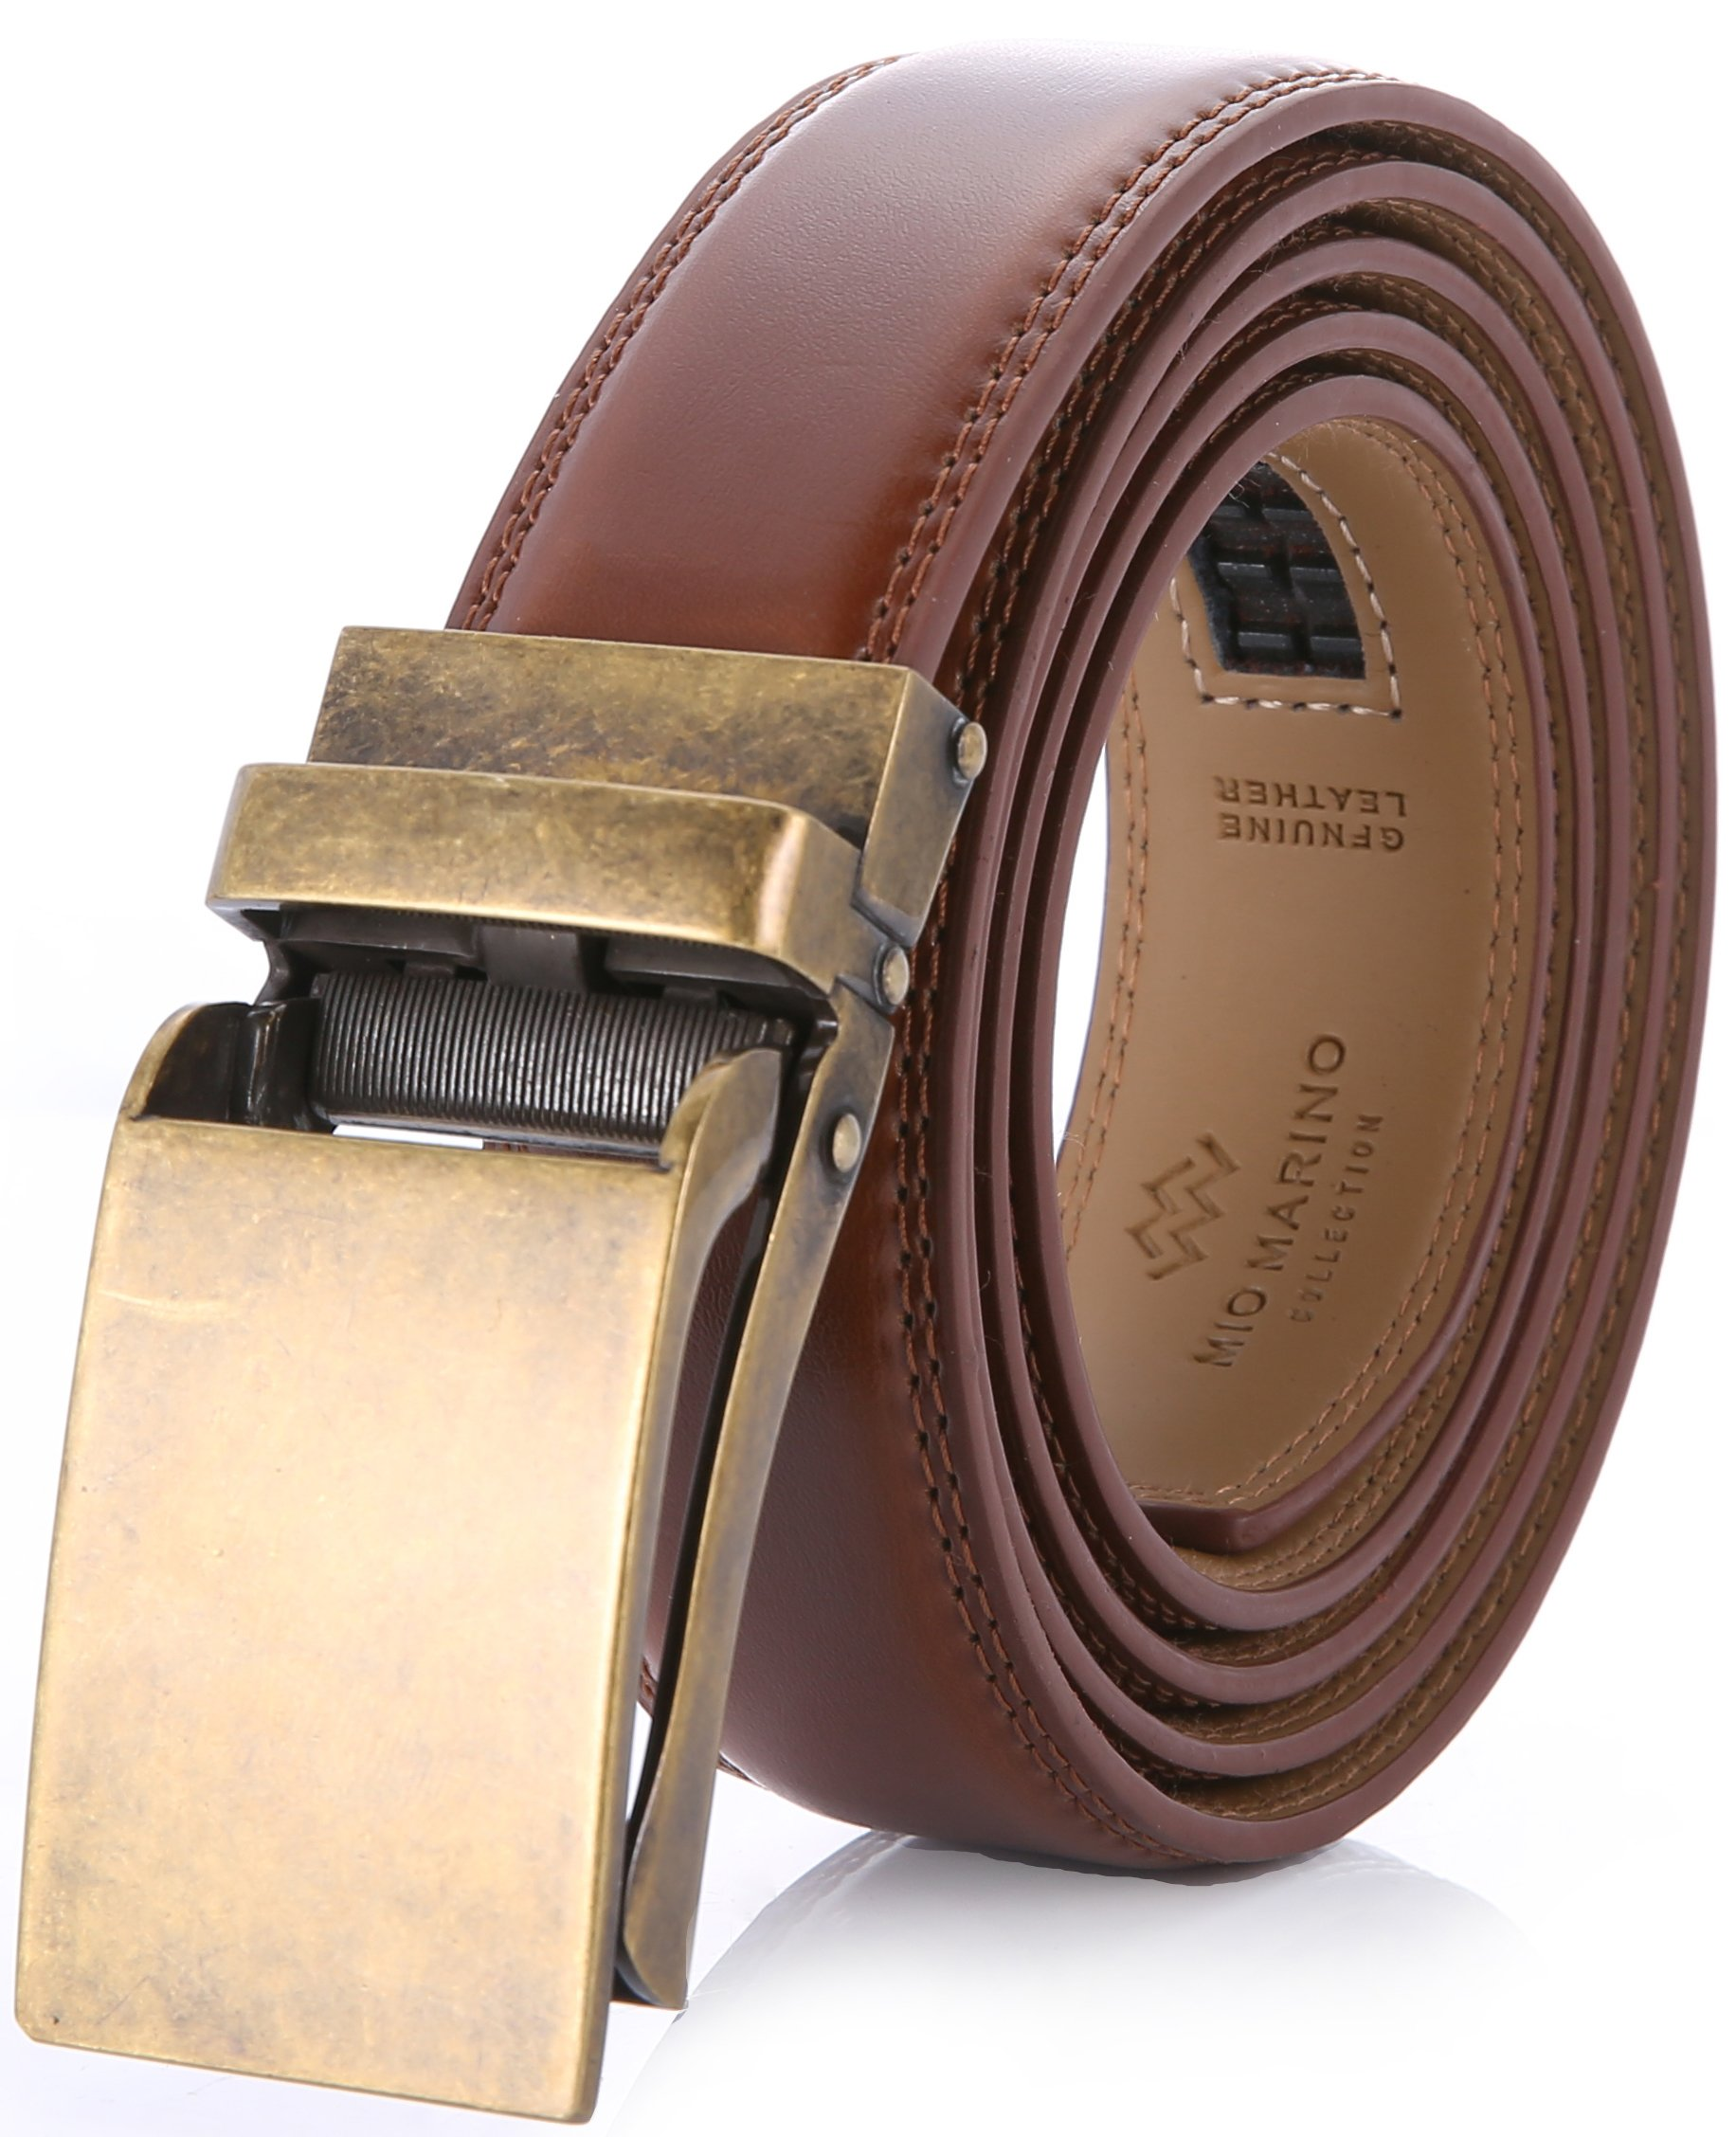 Marino Avenue Men's Genuine Leather Ratchet Dress Belt with Linxx Buckle, Enclosed in an Elegant Gift Box Burnt Umber - Style 77 Adjustable from 28'' to 44'' Waist by Marino Avenue